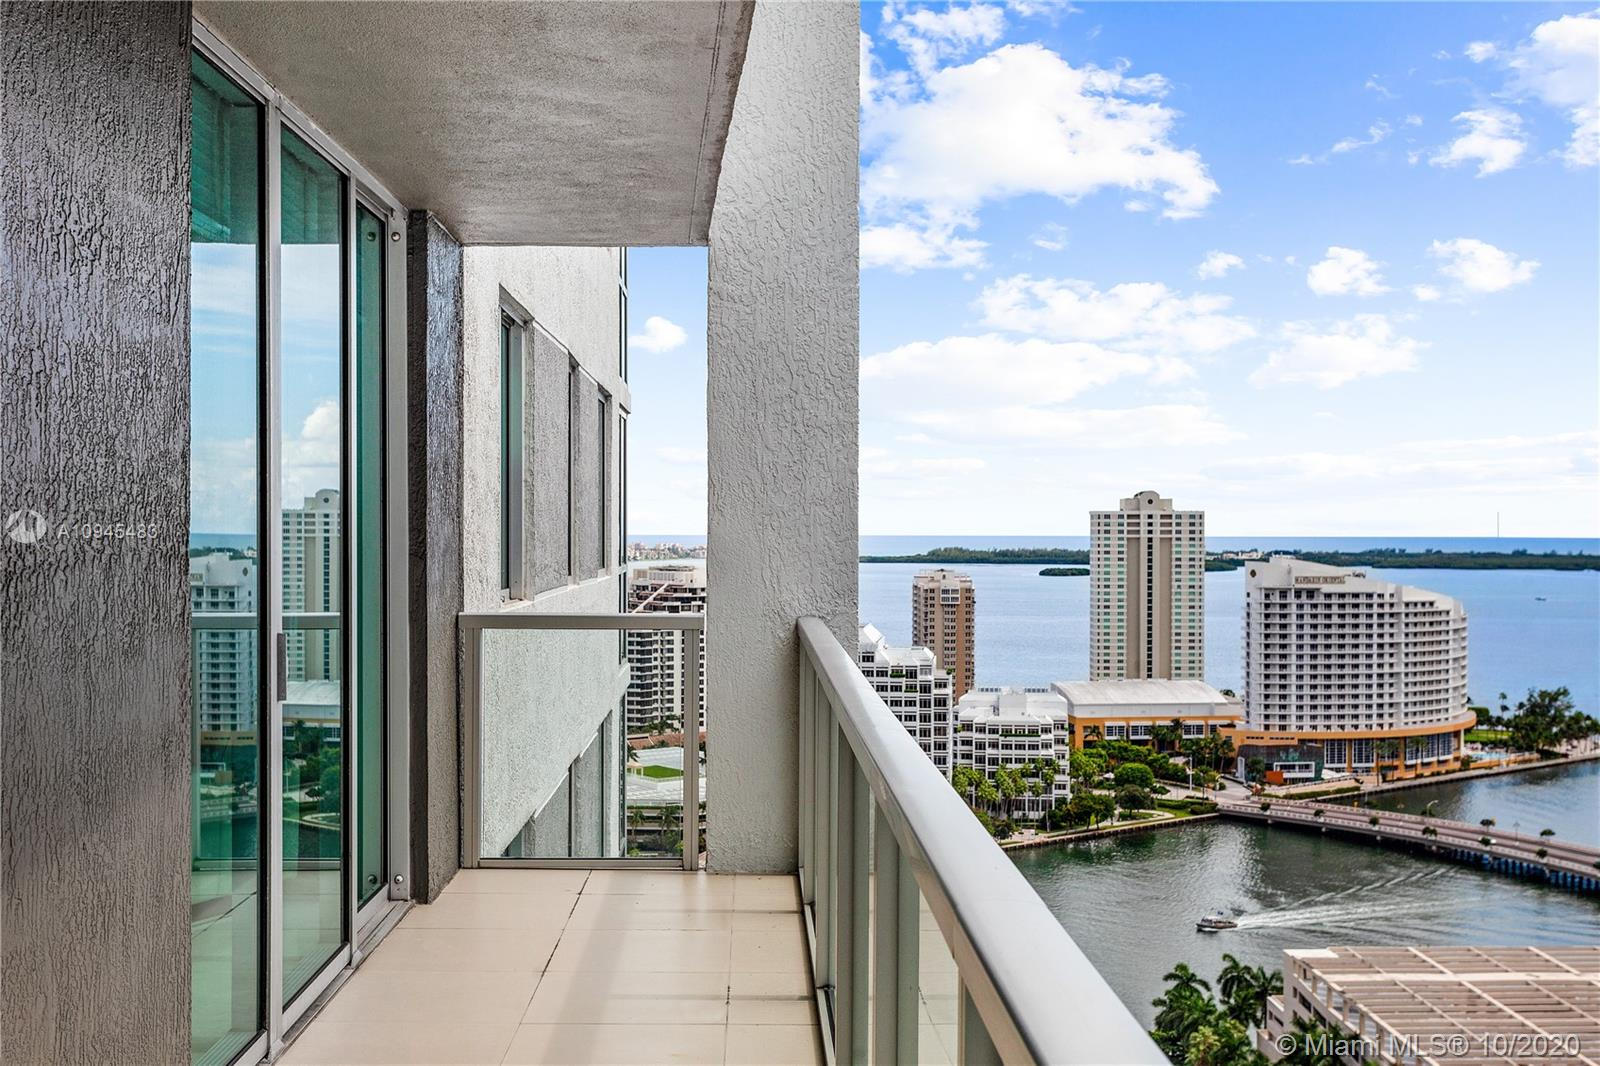 500 Brickell West Tower #2804 - 500 Brickell Ave #2804, Miami, FL 33131